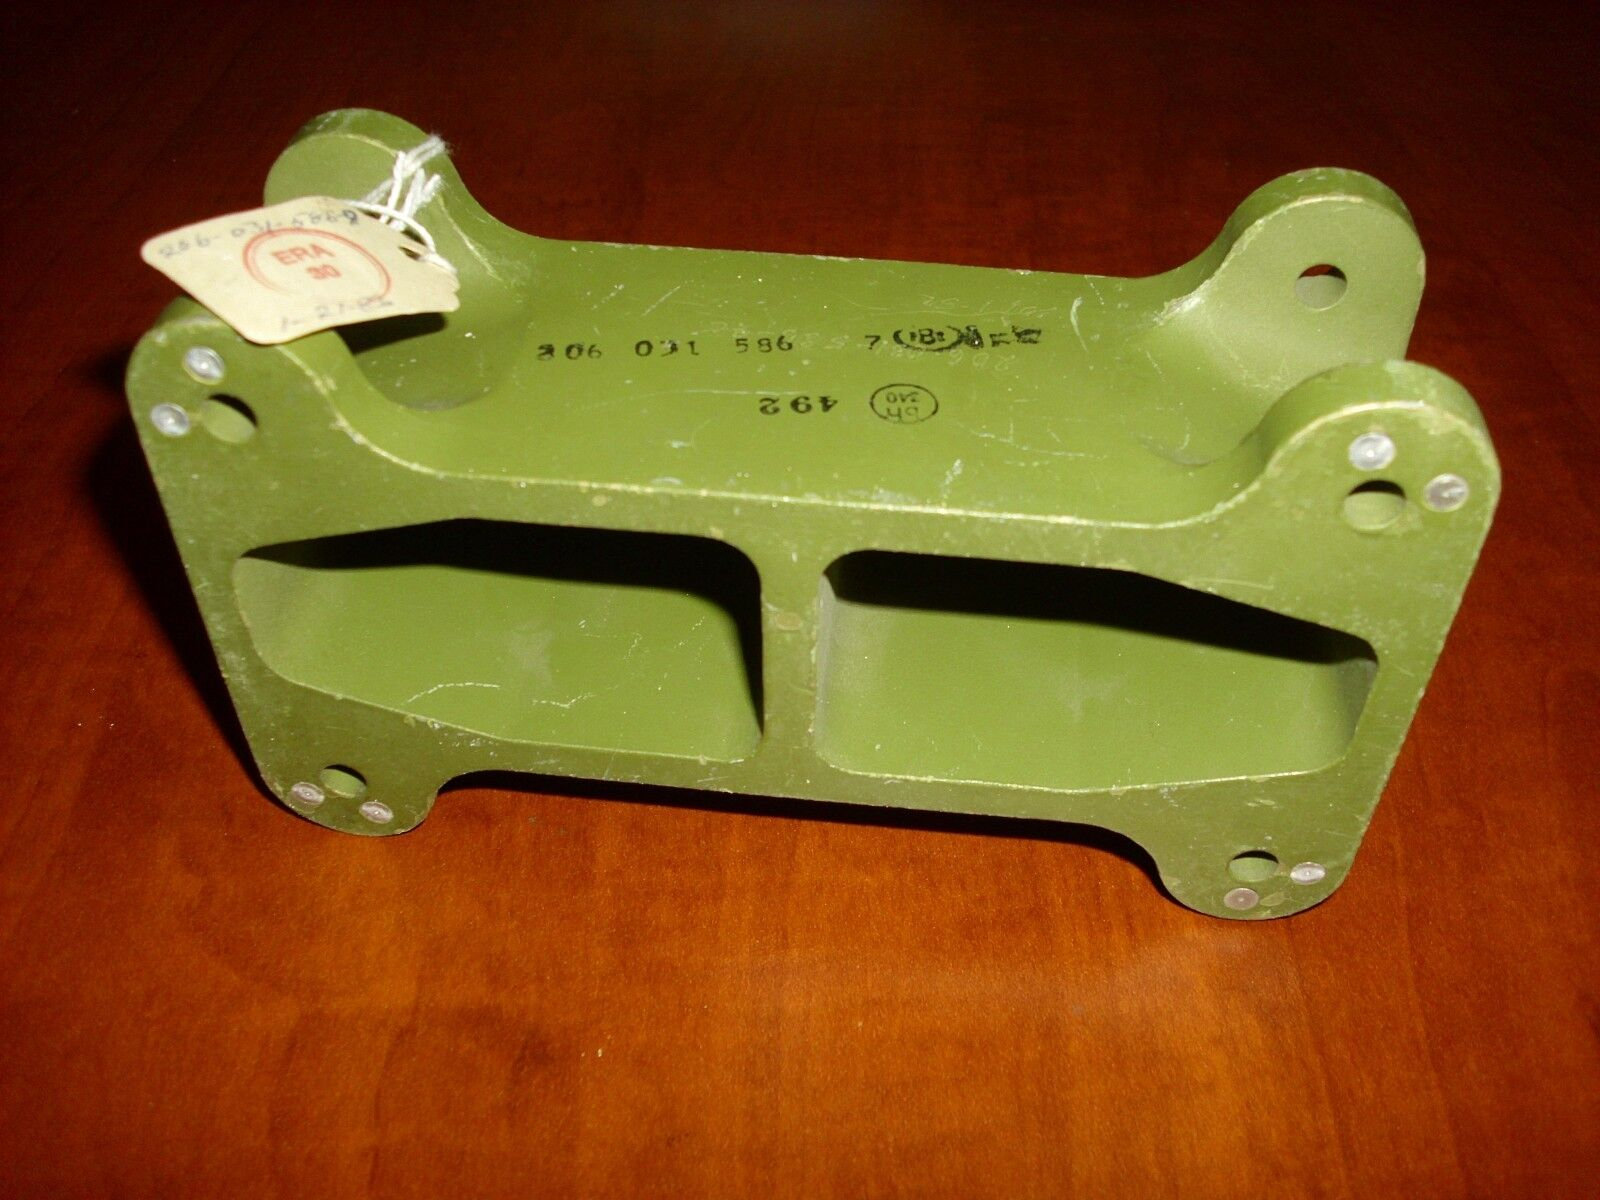 Bell 206 Helicopter Spacer Block 206-031-586-009